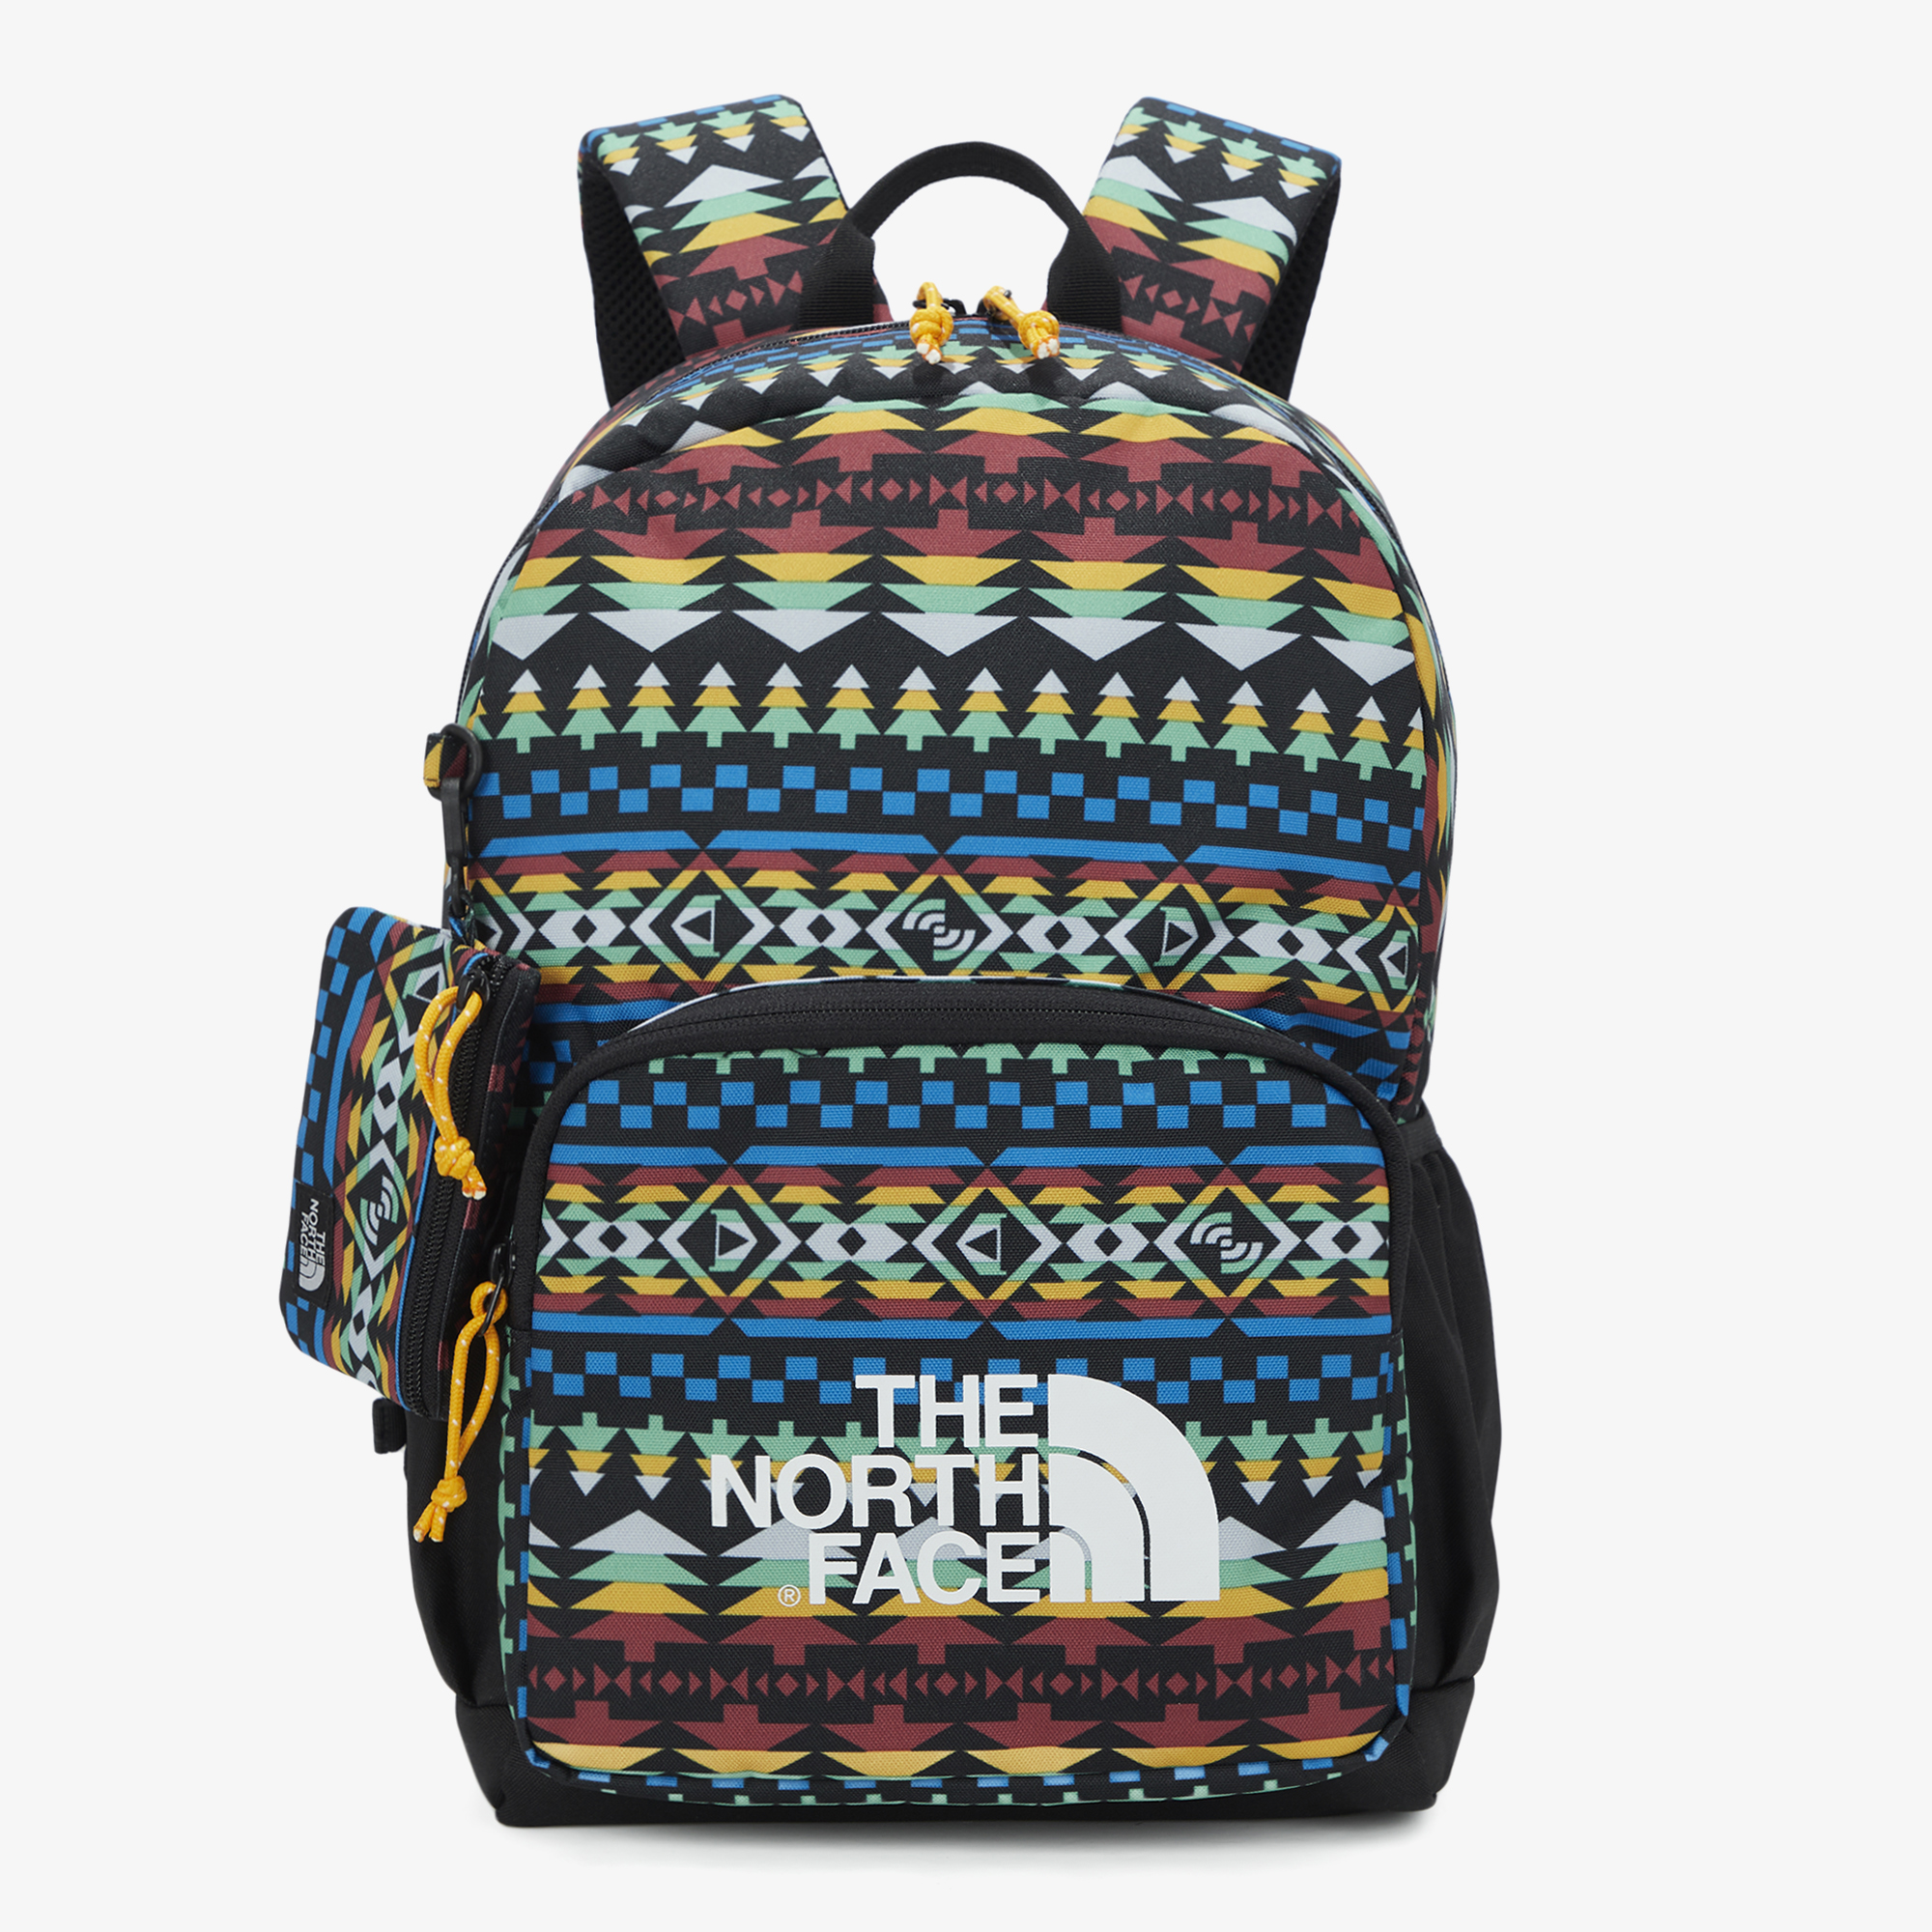 THE NORTH FACE-KIDS ROOKIE SCHOOL PACK